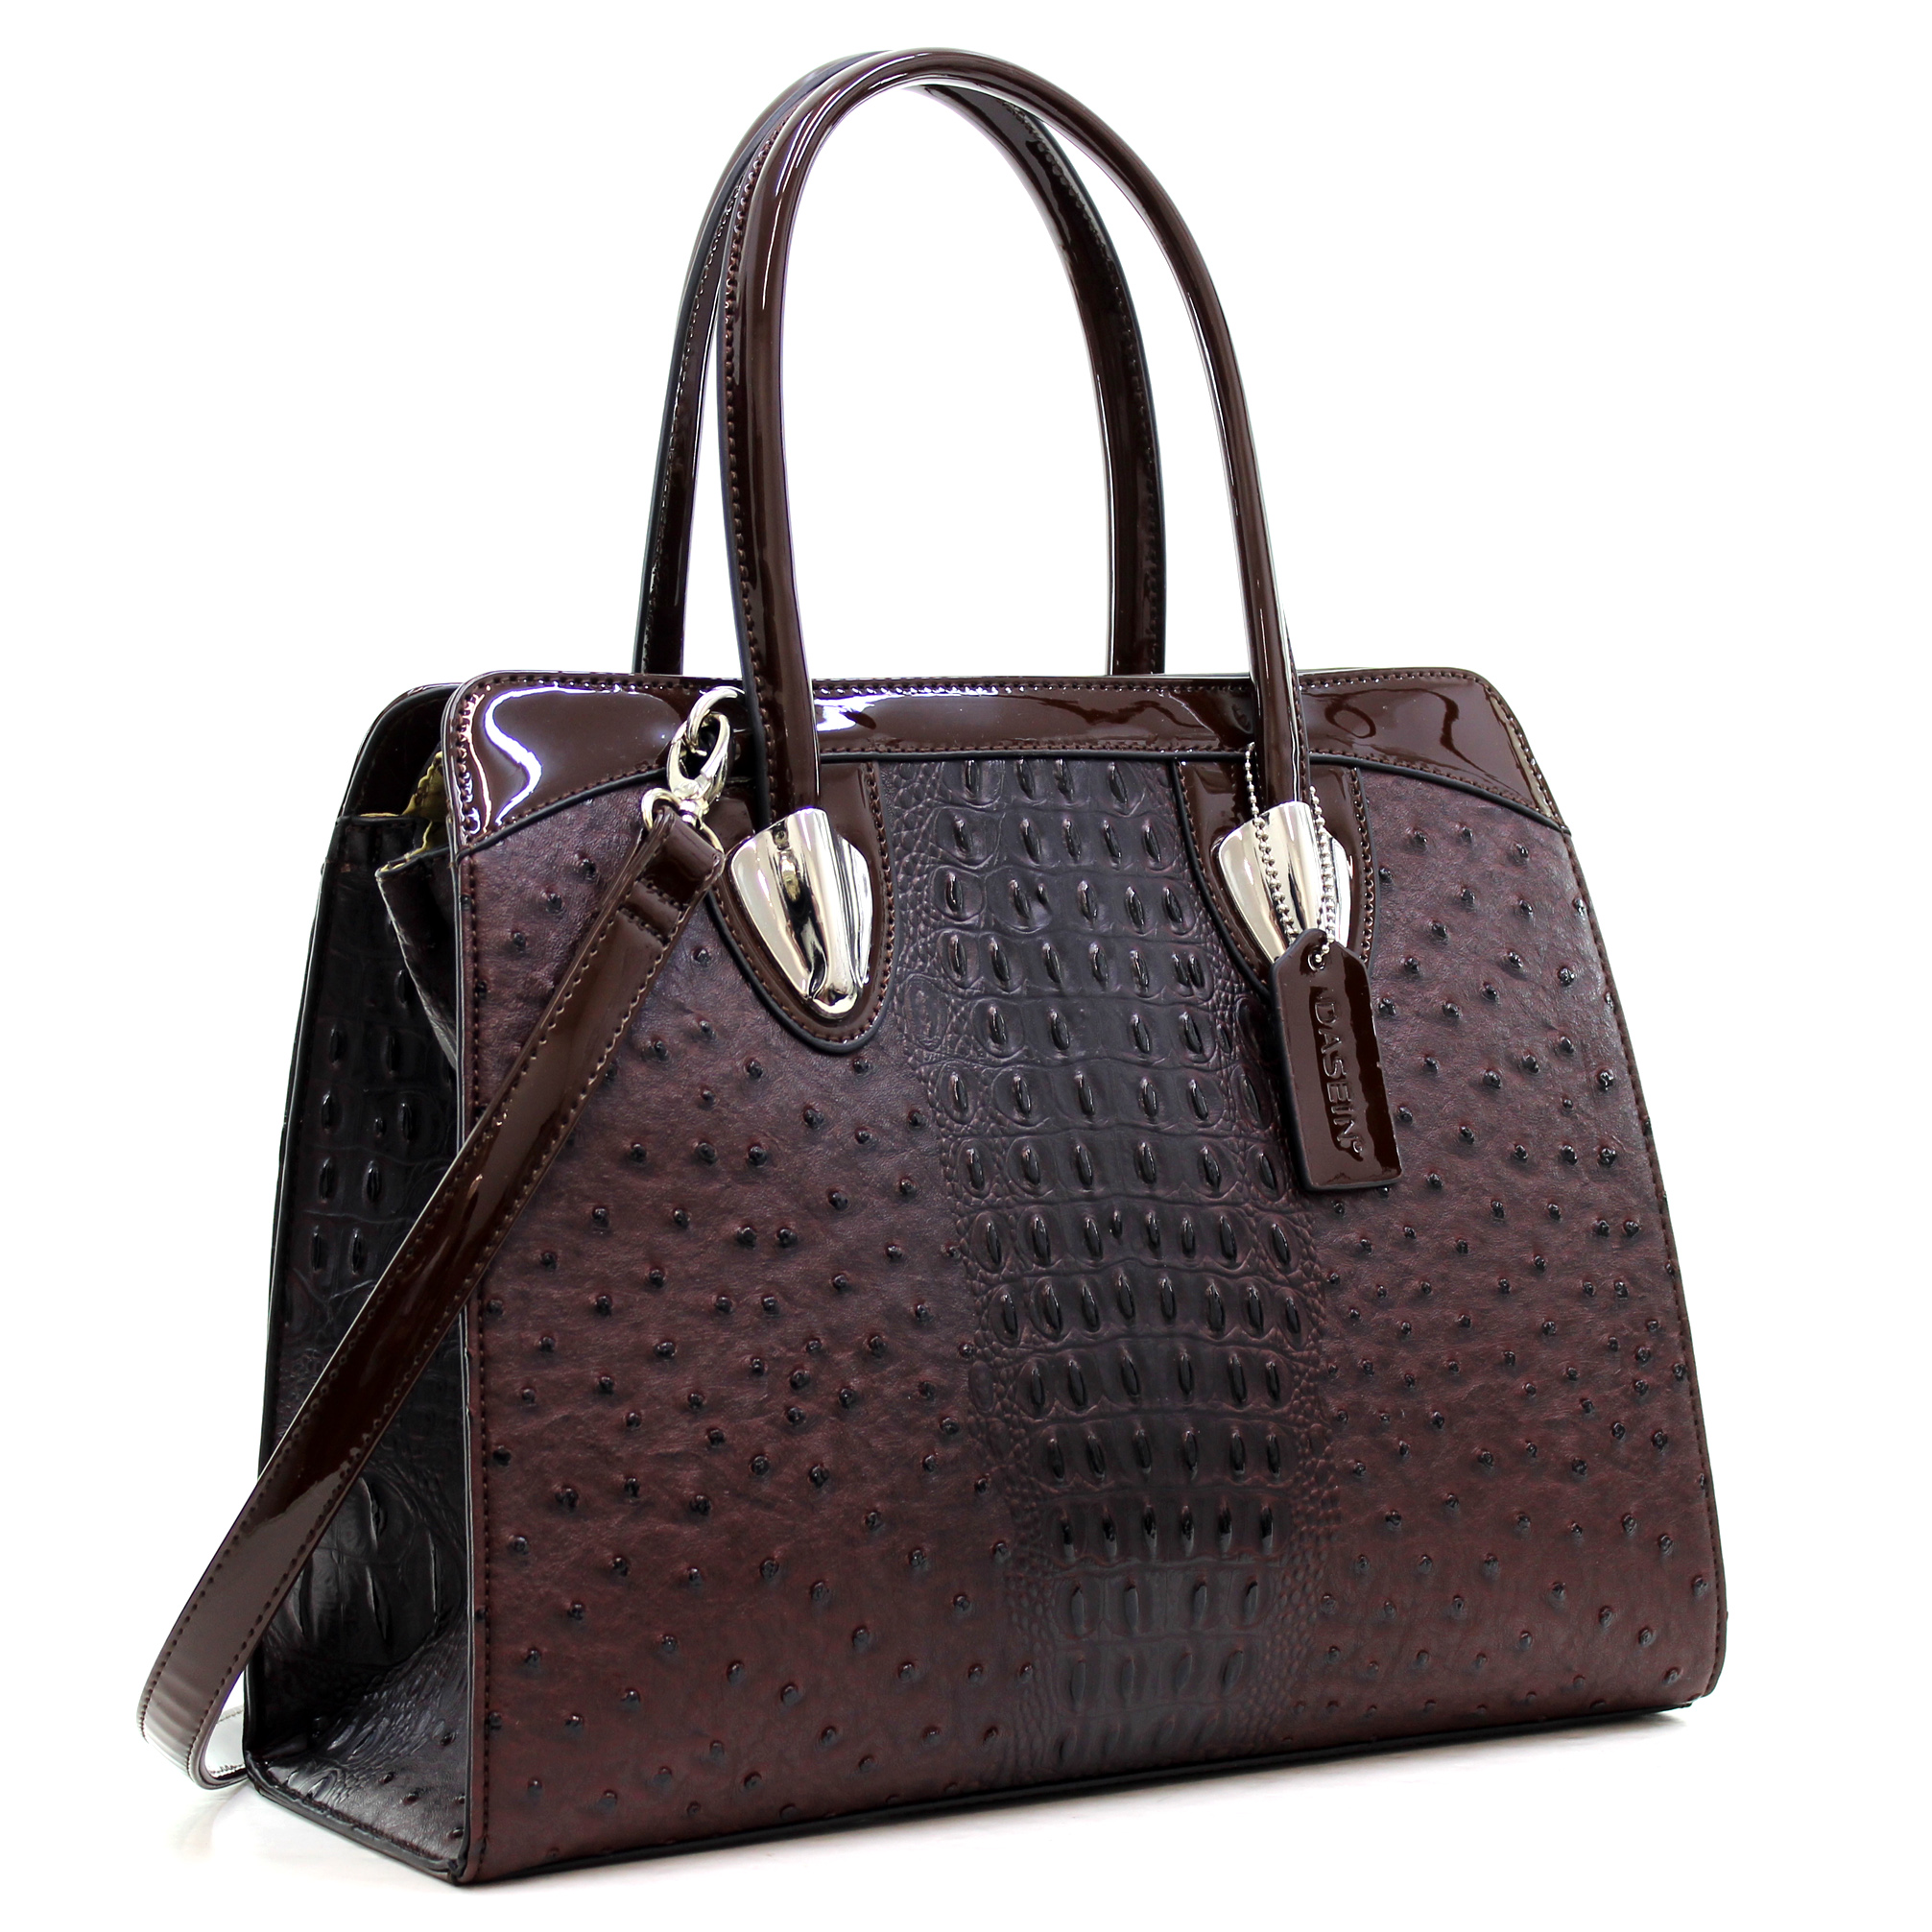 Dasein® Ostrich Leather Satchel with Patent Leather Trim